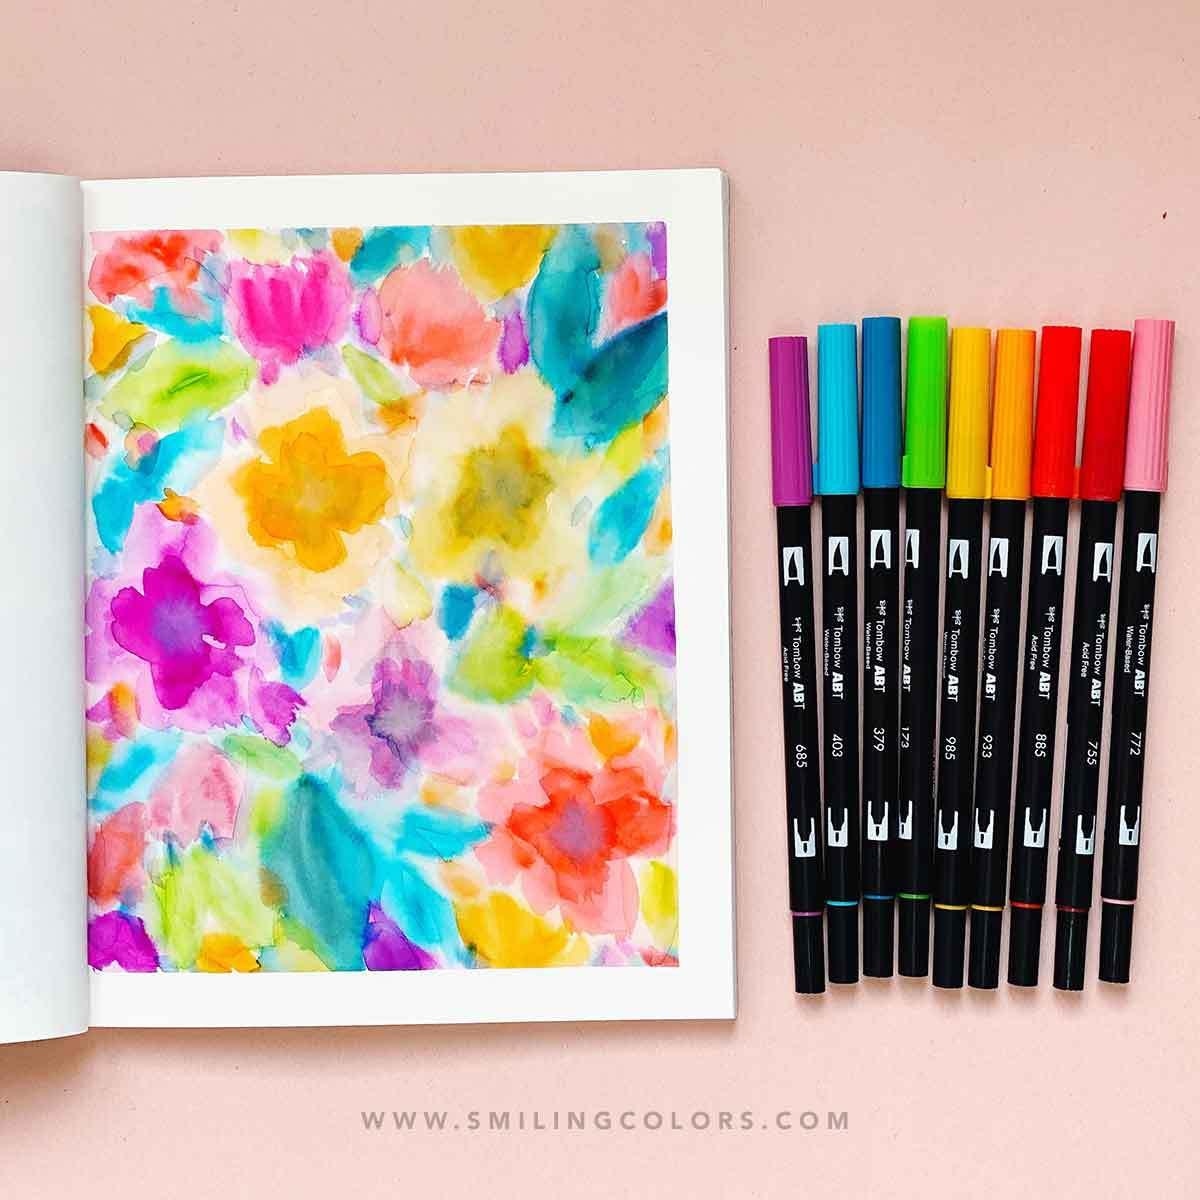 Messy floral painting: Video